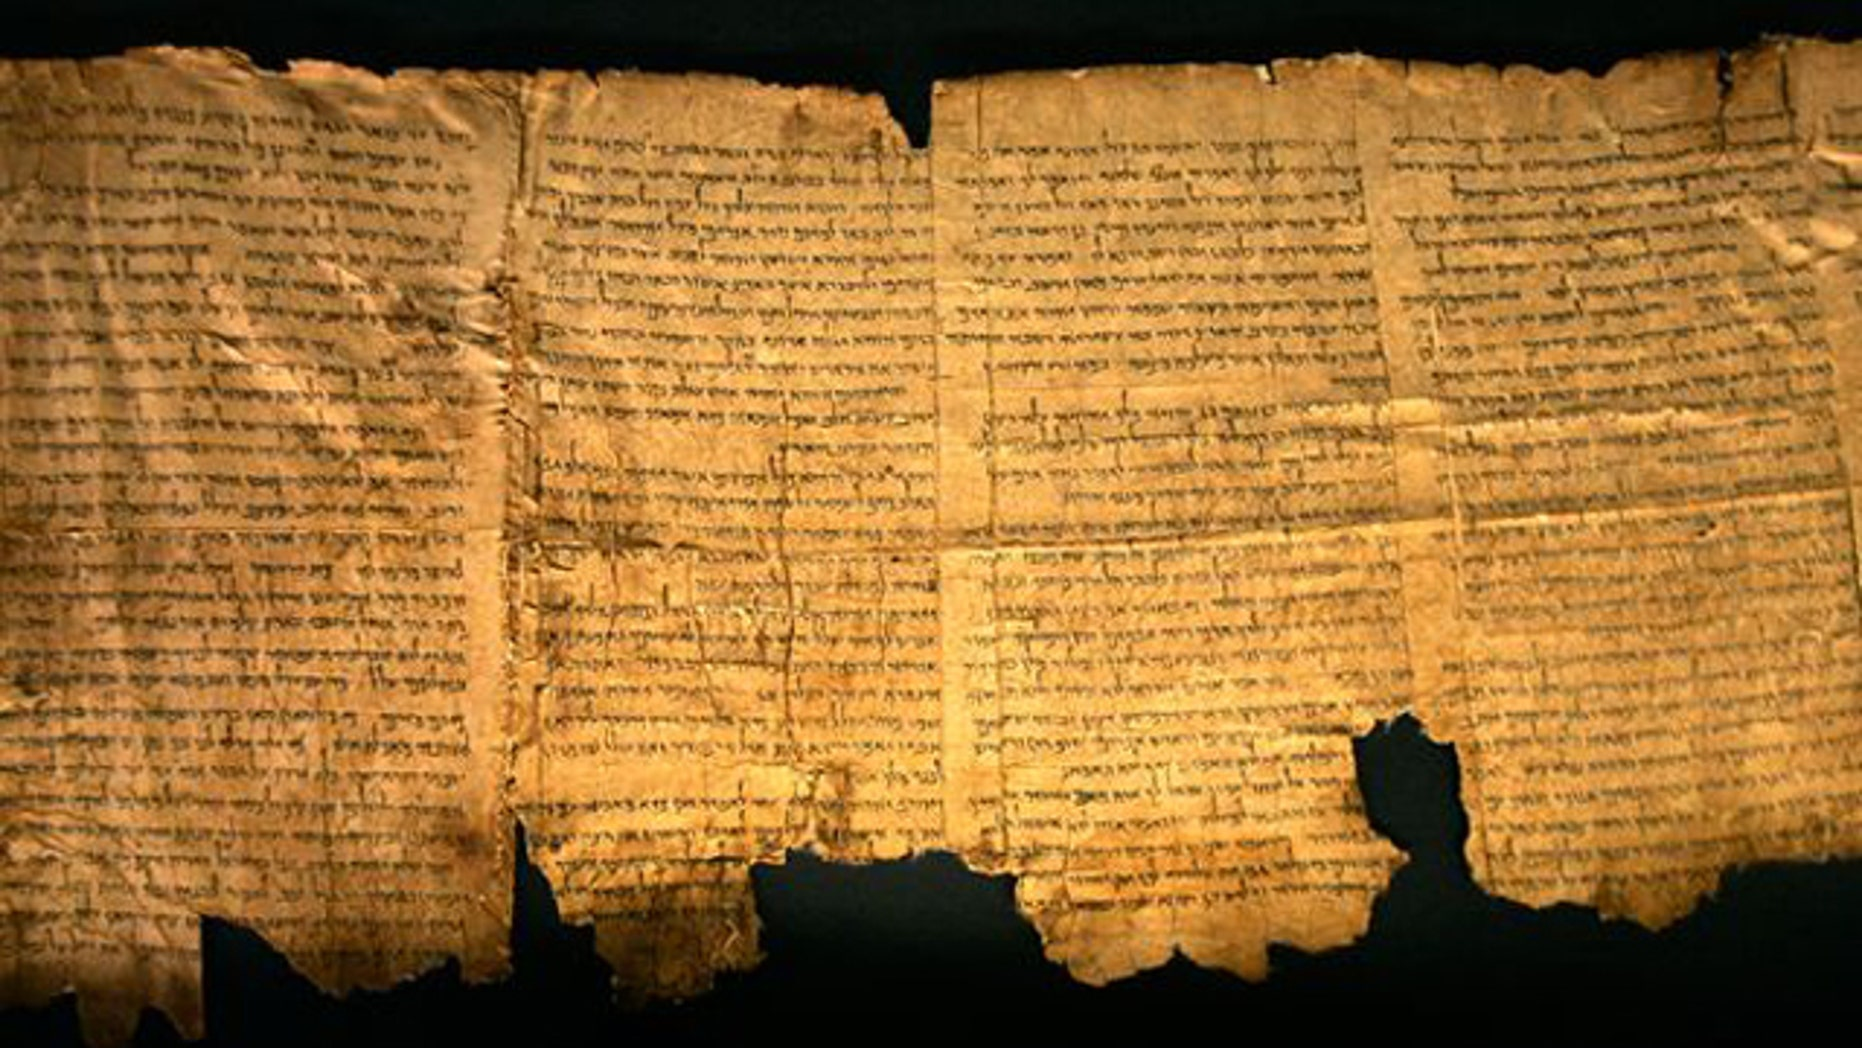 Sections of the Dead Sea Scrolls on display at the Israel Museum in Jerusalem in 2008.